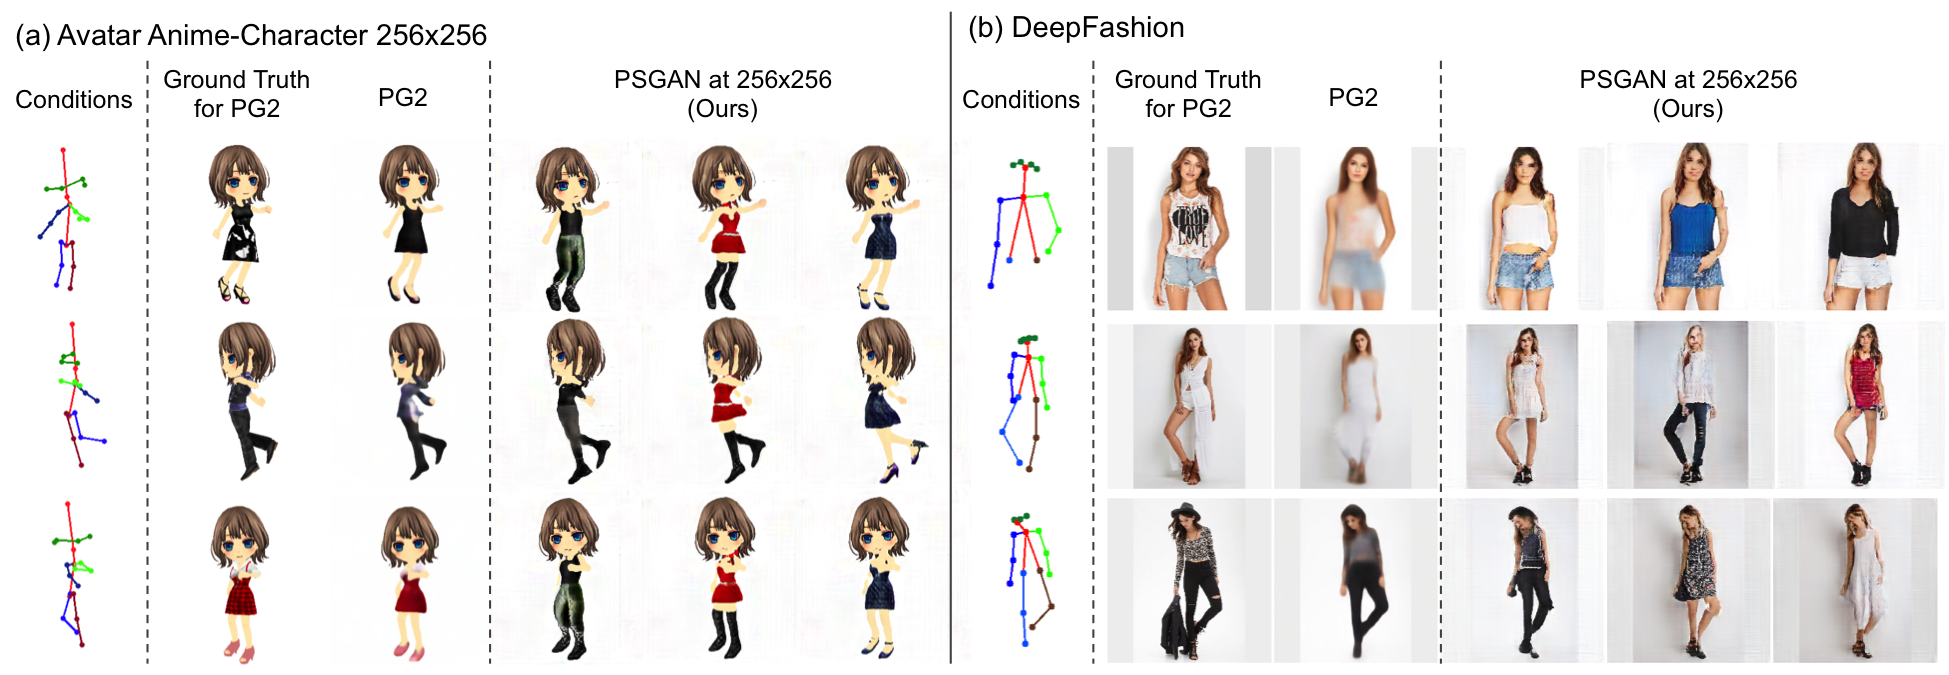 Comparison of generated image quality based on pose conditions